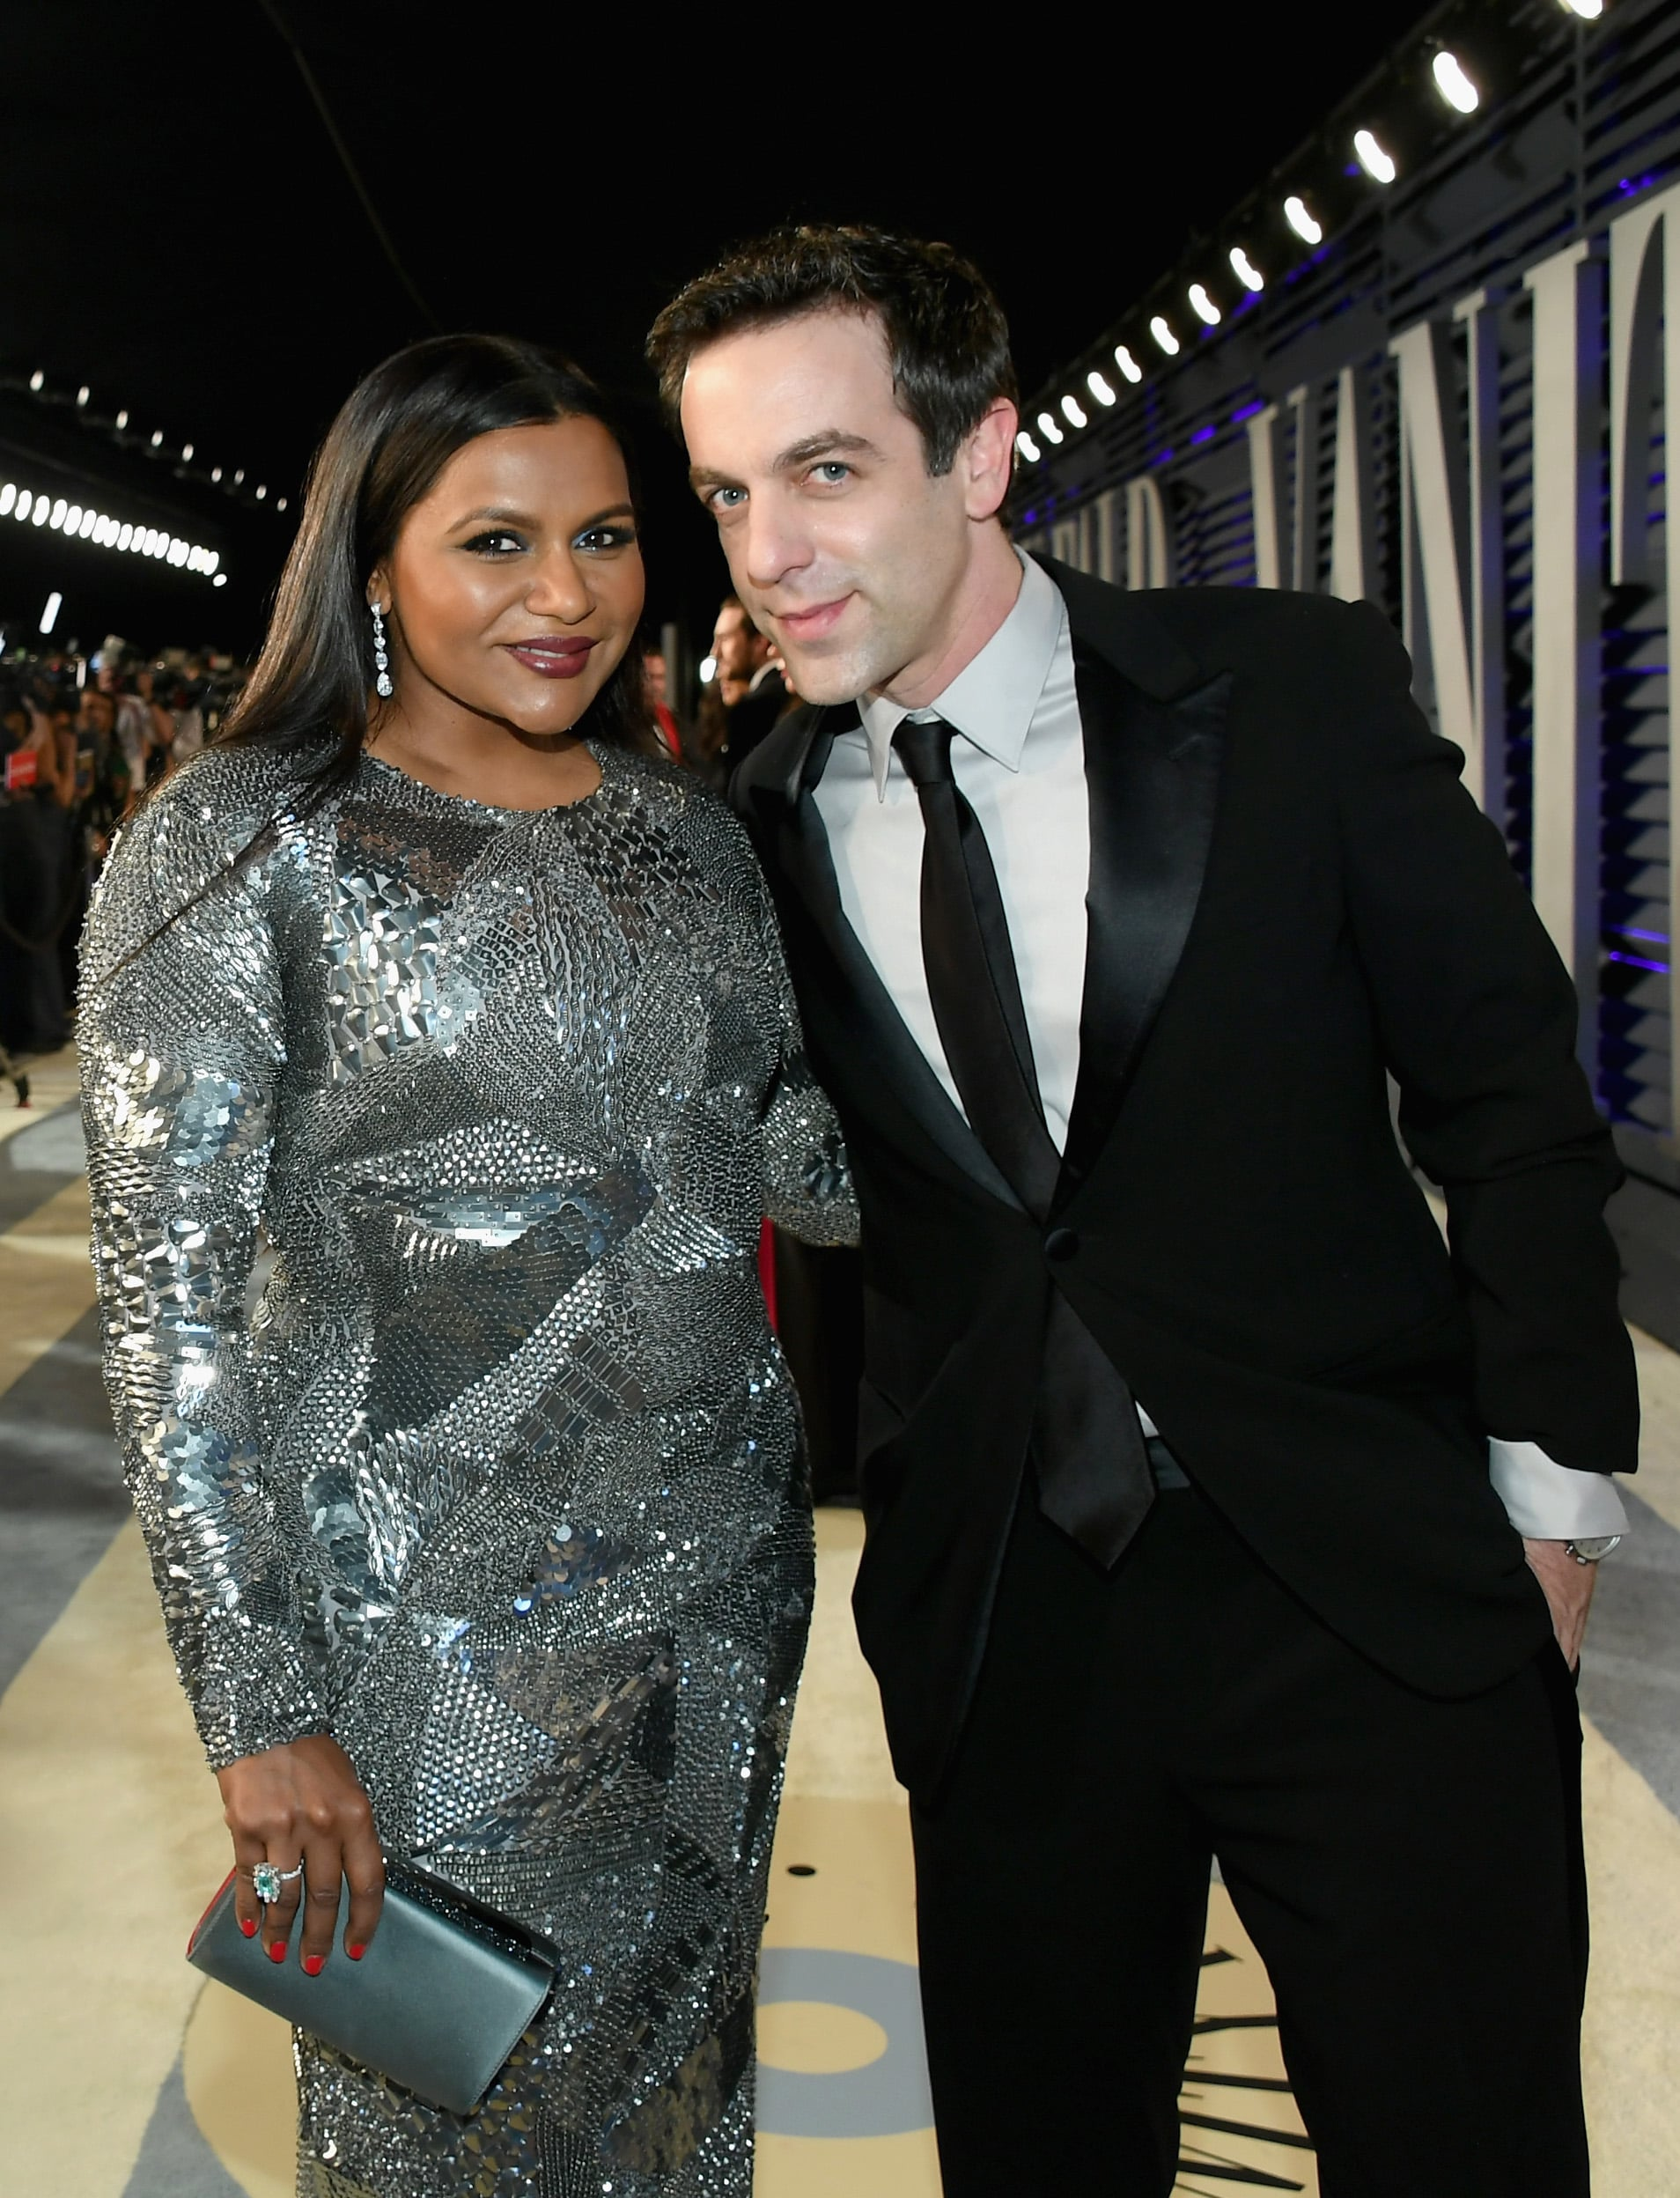 BEVERLY HILLS, CA - FEBRUARY 24:  Mindy Kaling (L) and B. J. Novak attend the 2019 Vanity Fair Oscar Party hosted by Radhika Jones at Wallis Annenberg Centre for the Performing Arts on February 24, 2019 in Beverly Hills, California.  (Photo by Mike Coppola/VF19/Getty Images for VF)